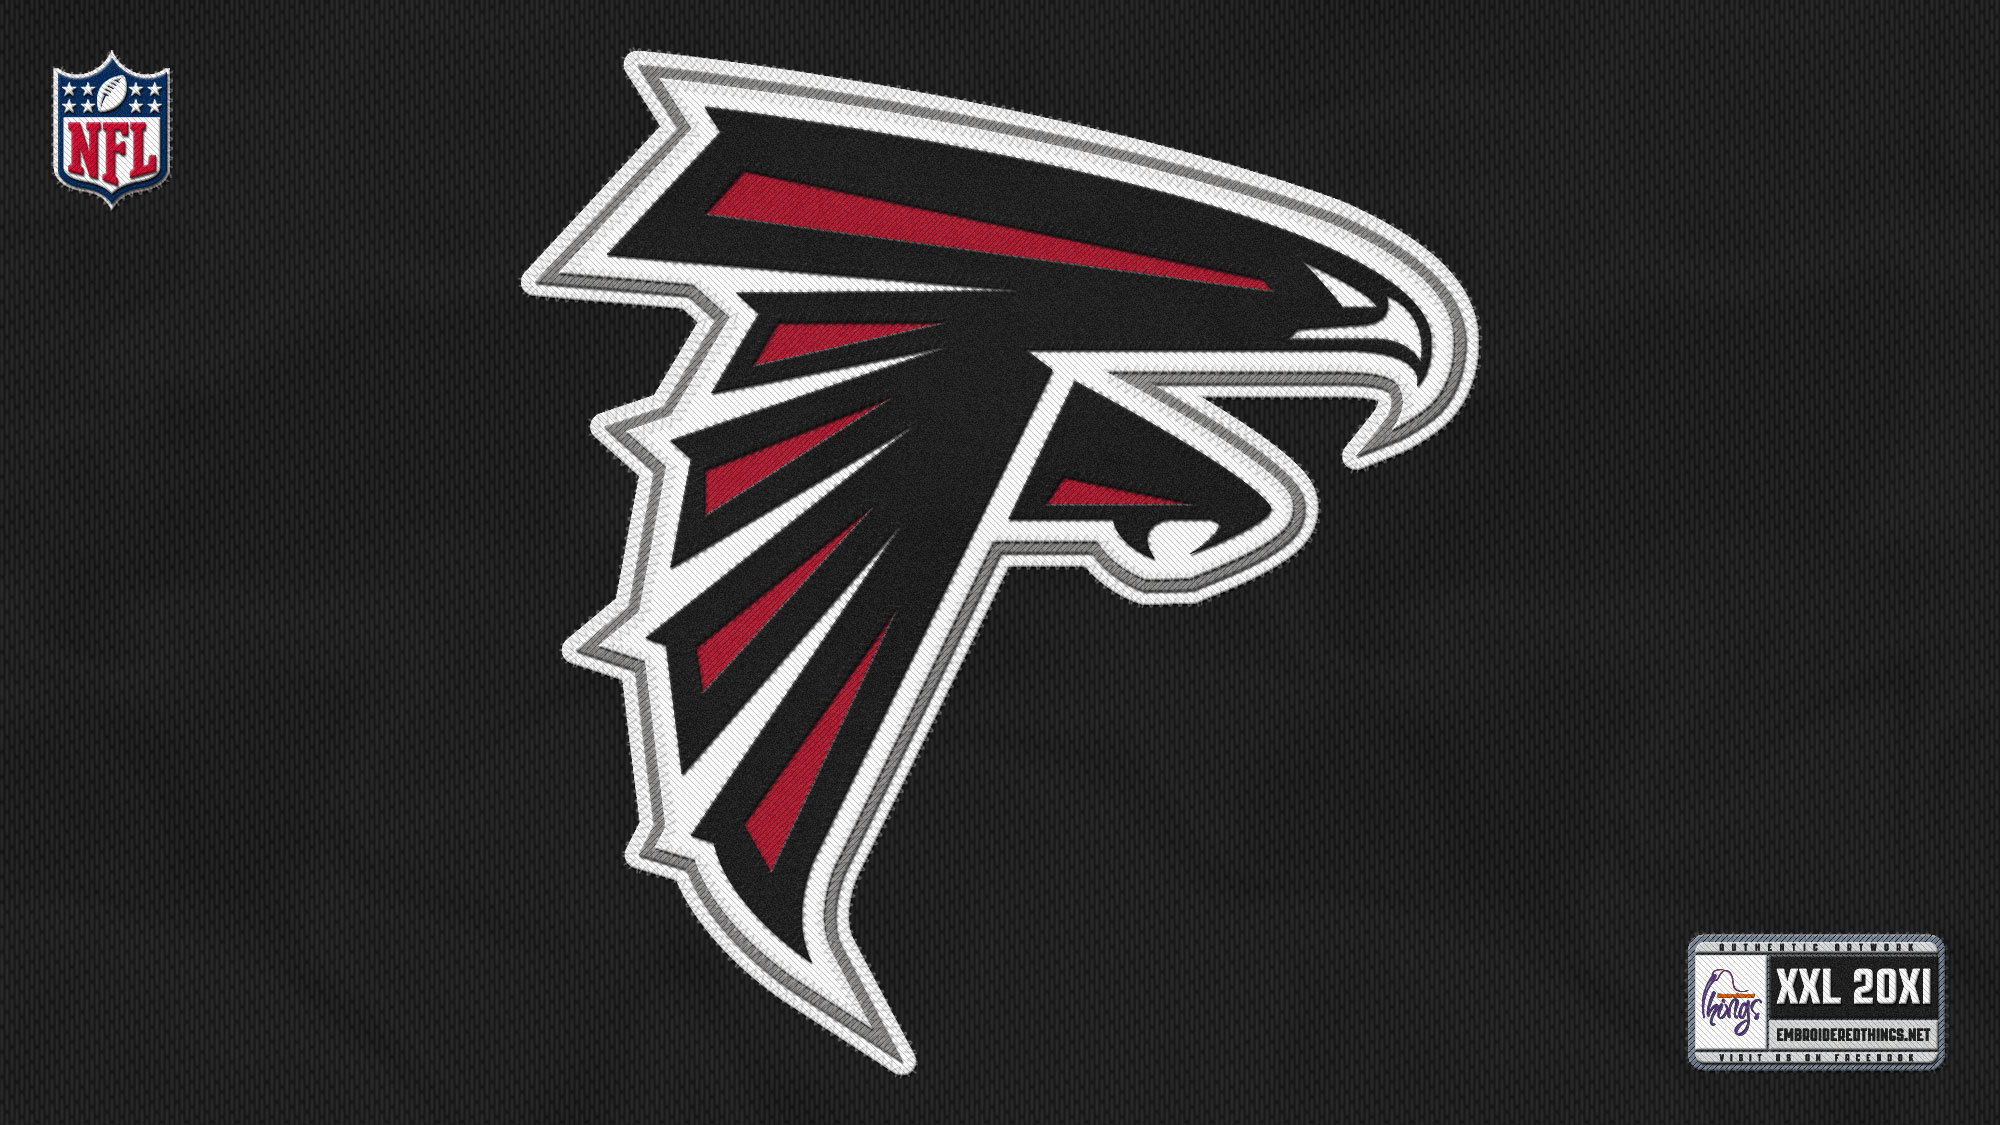 Falcons Iphone Wallpaper: Atlanta Falcons Wallpaper Desktop